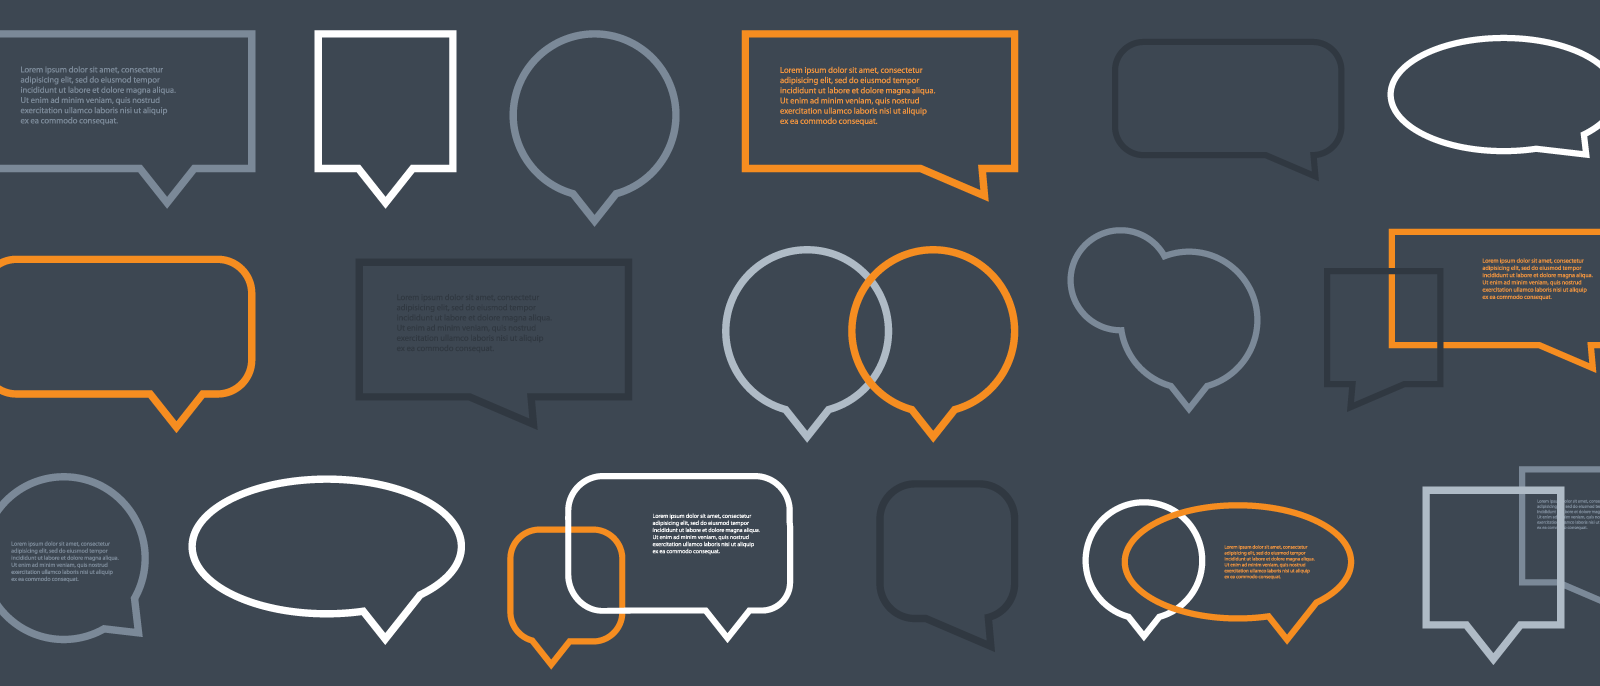 Collaborative Diagrams With Commenting Confluence Cloud